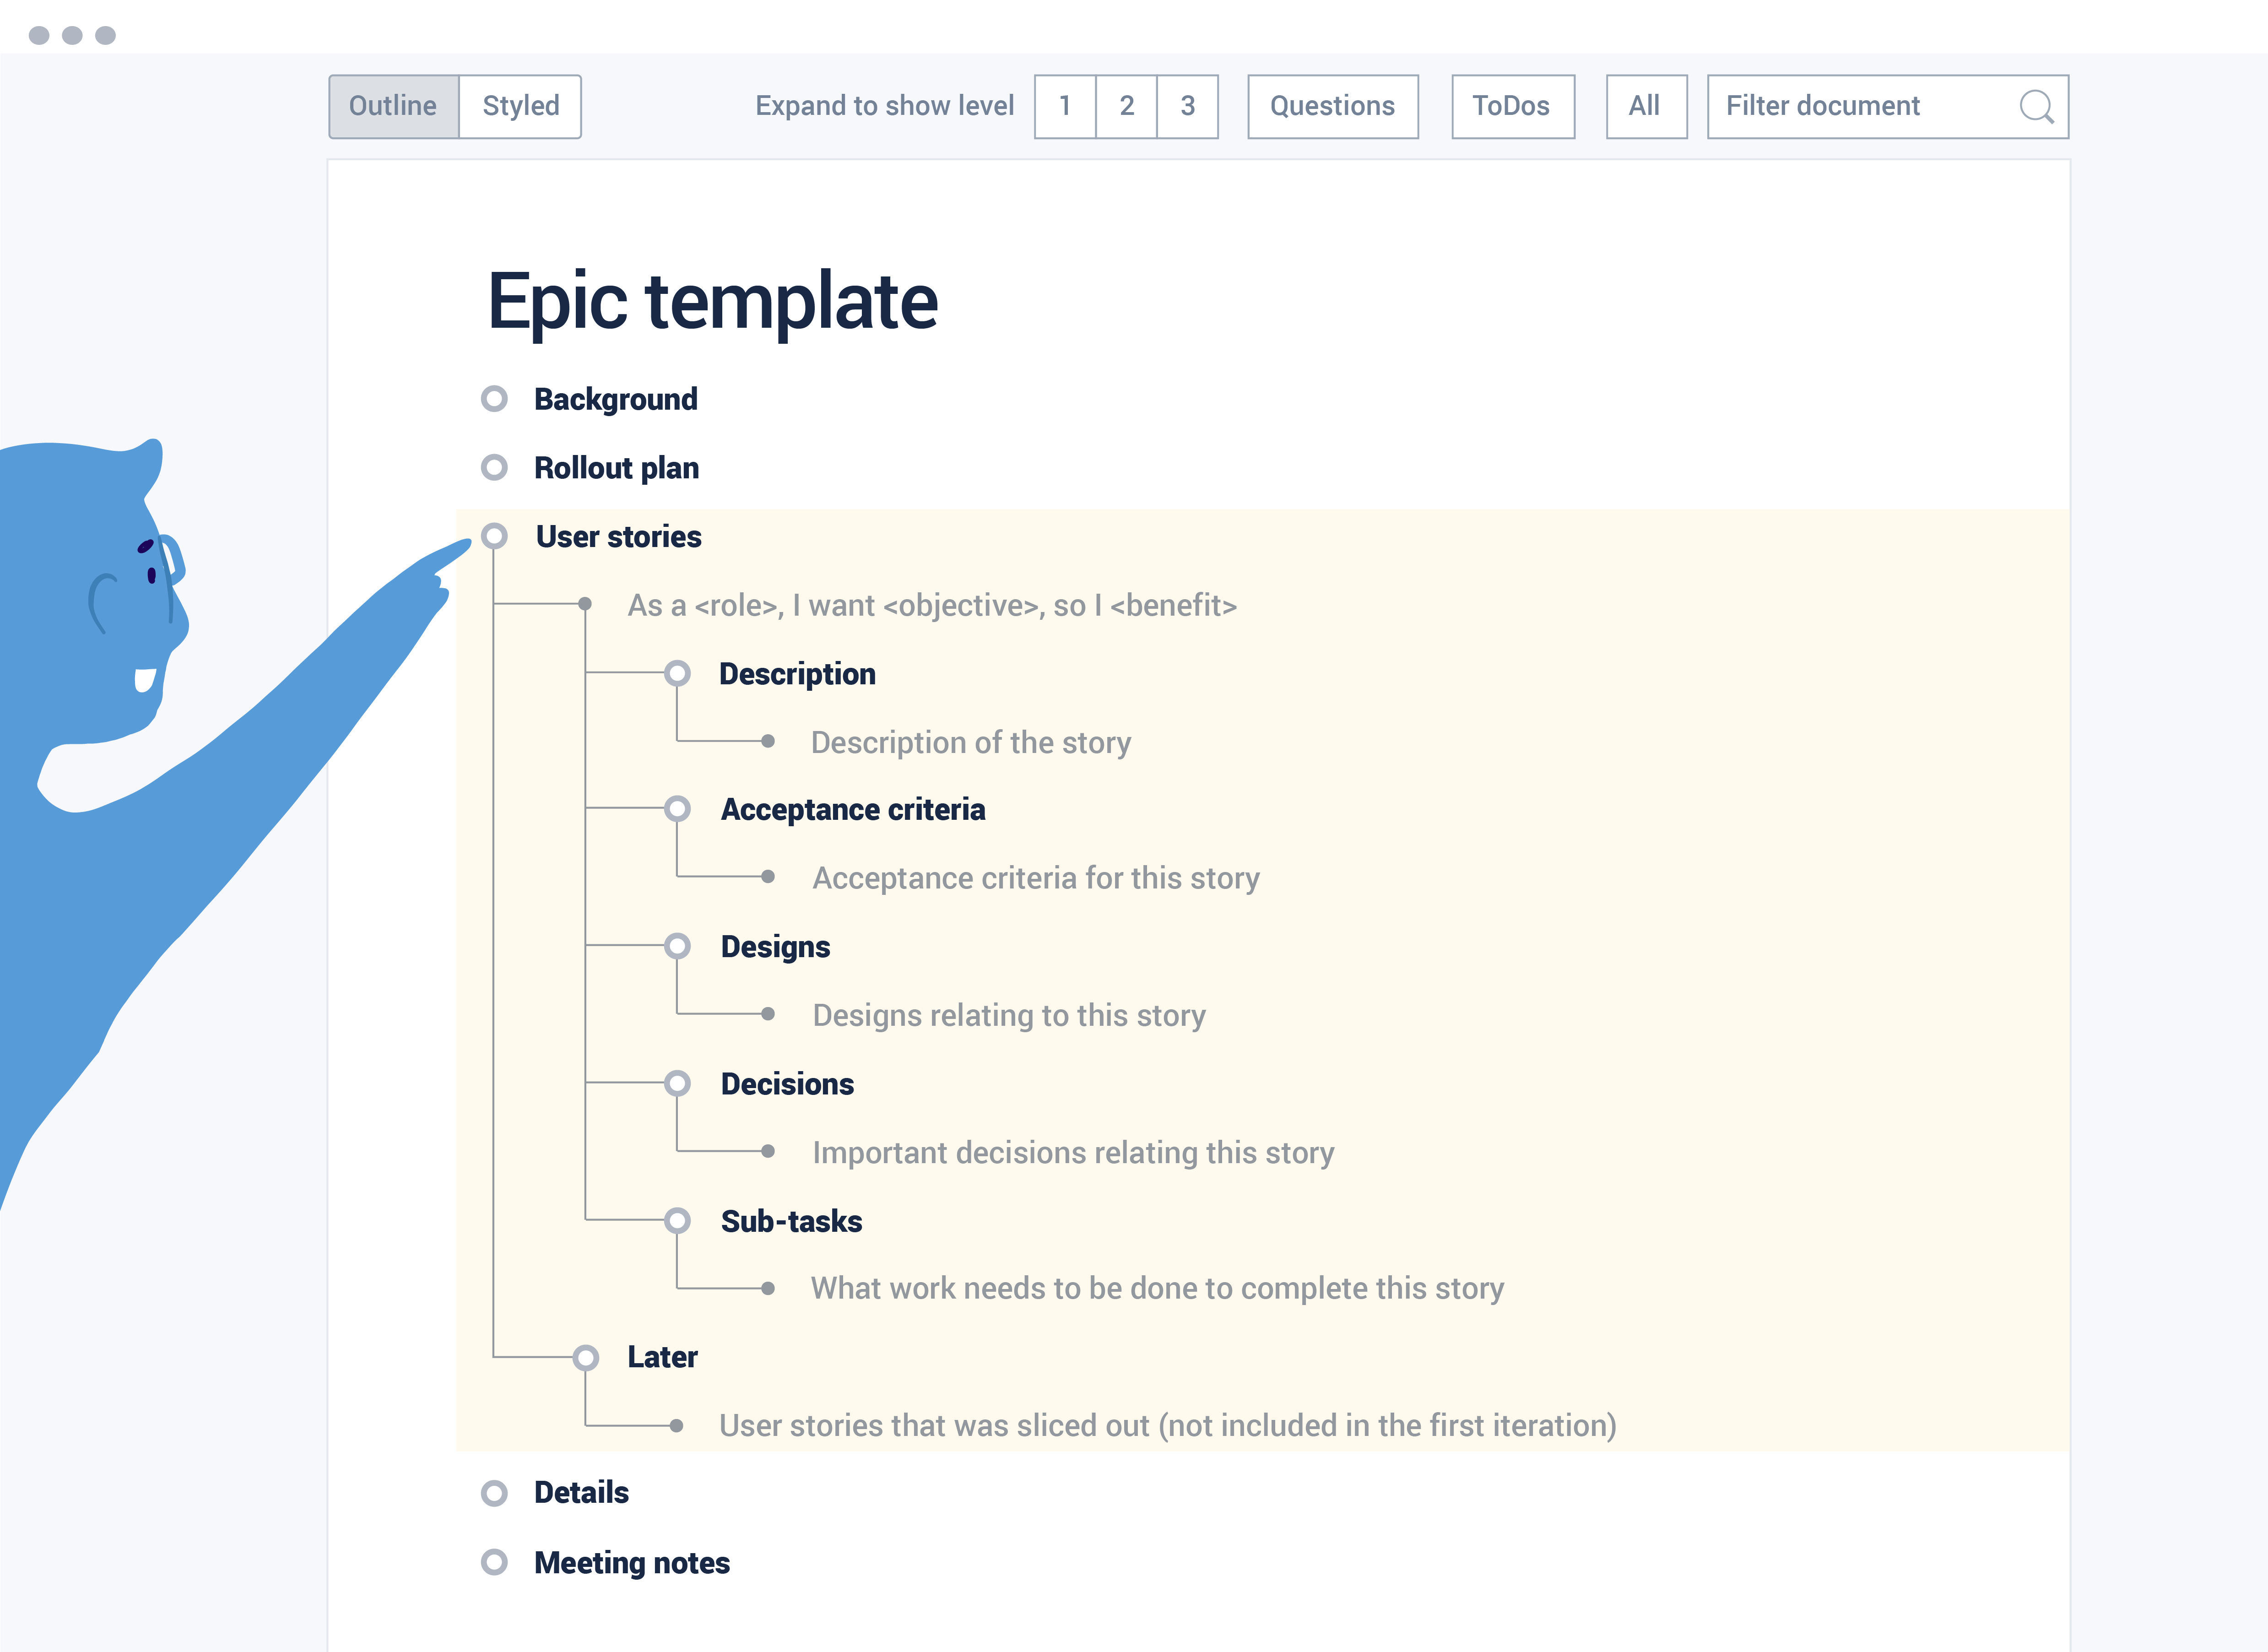 Epic with User story template